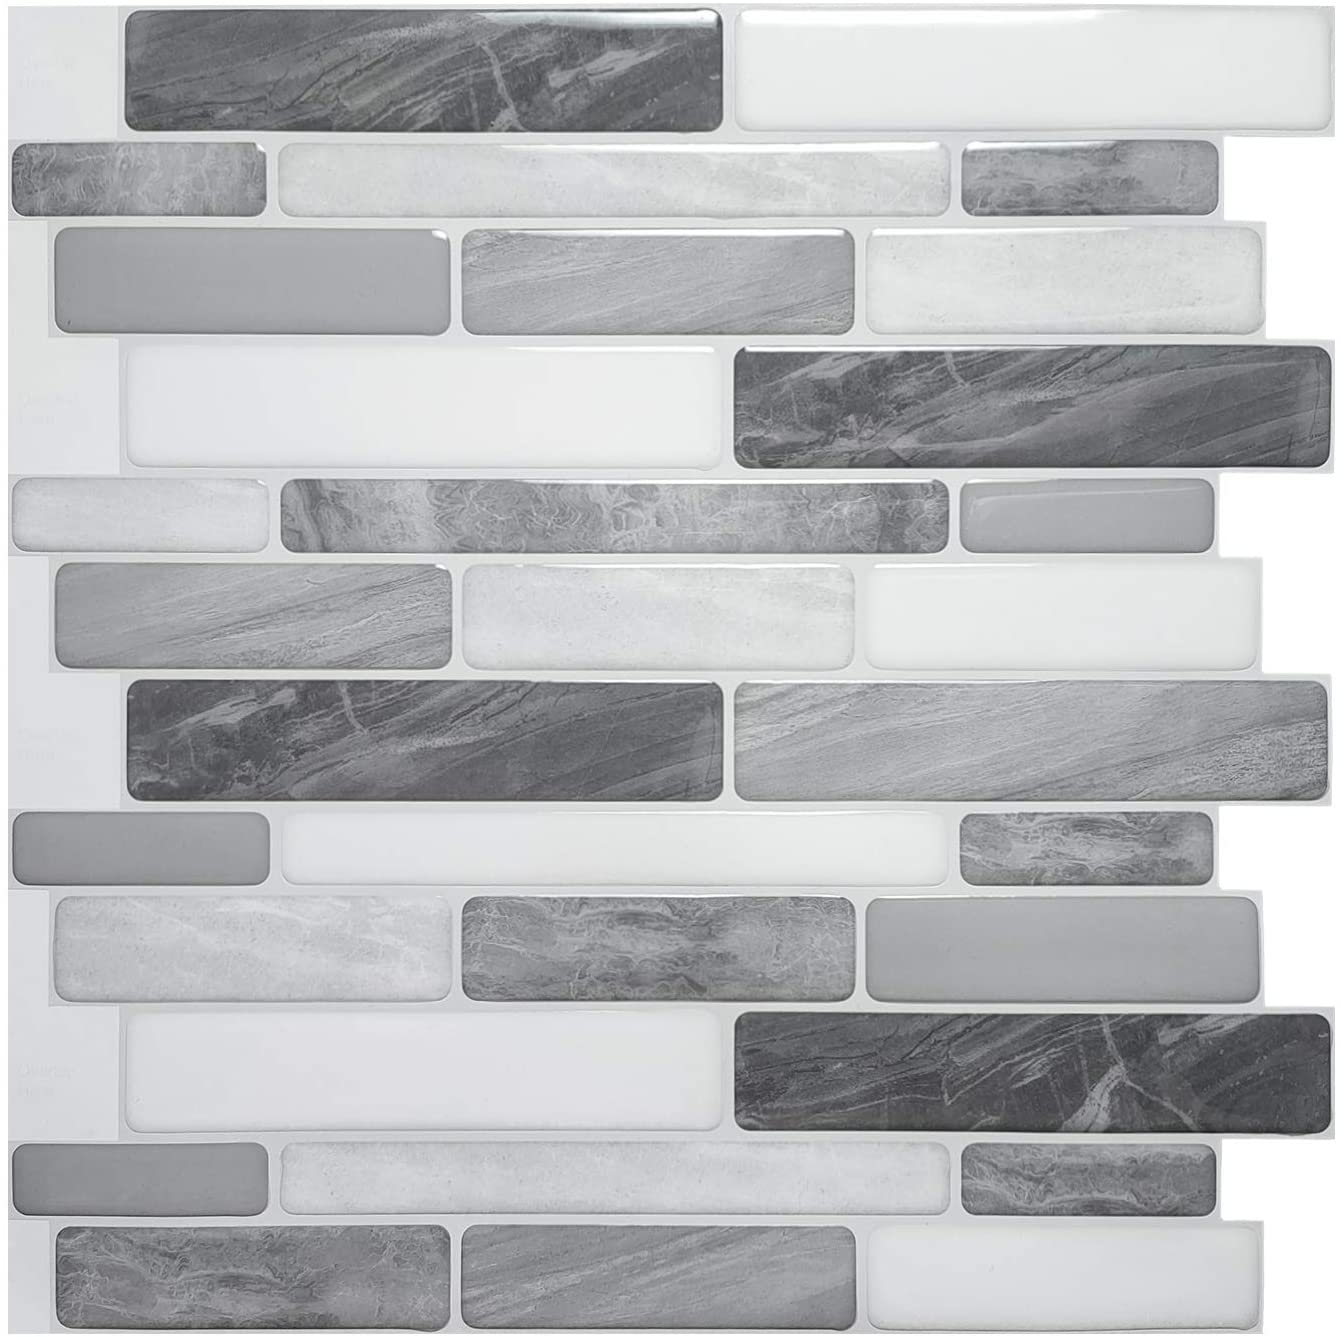 Art3d 10-Sheet Self-Adhesive Tile Backsplash for Kitchen, Vinyl Decorative Tiles